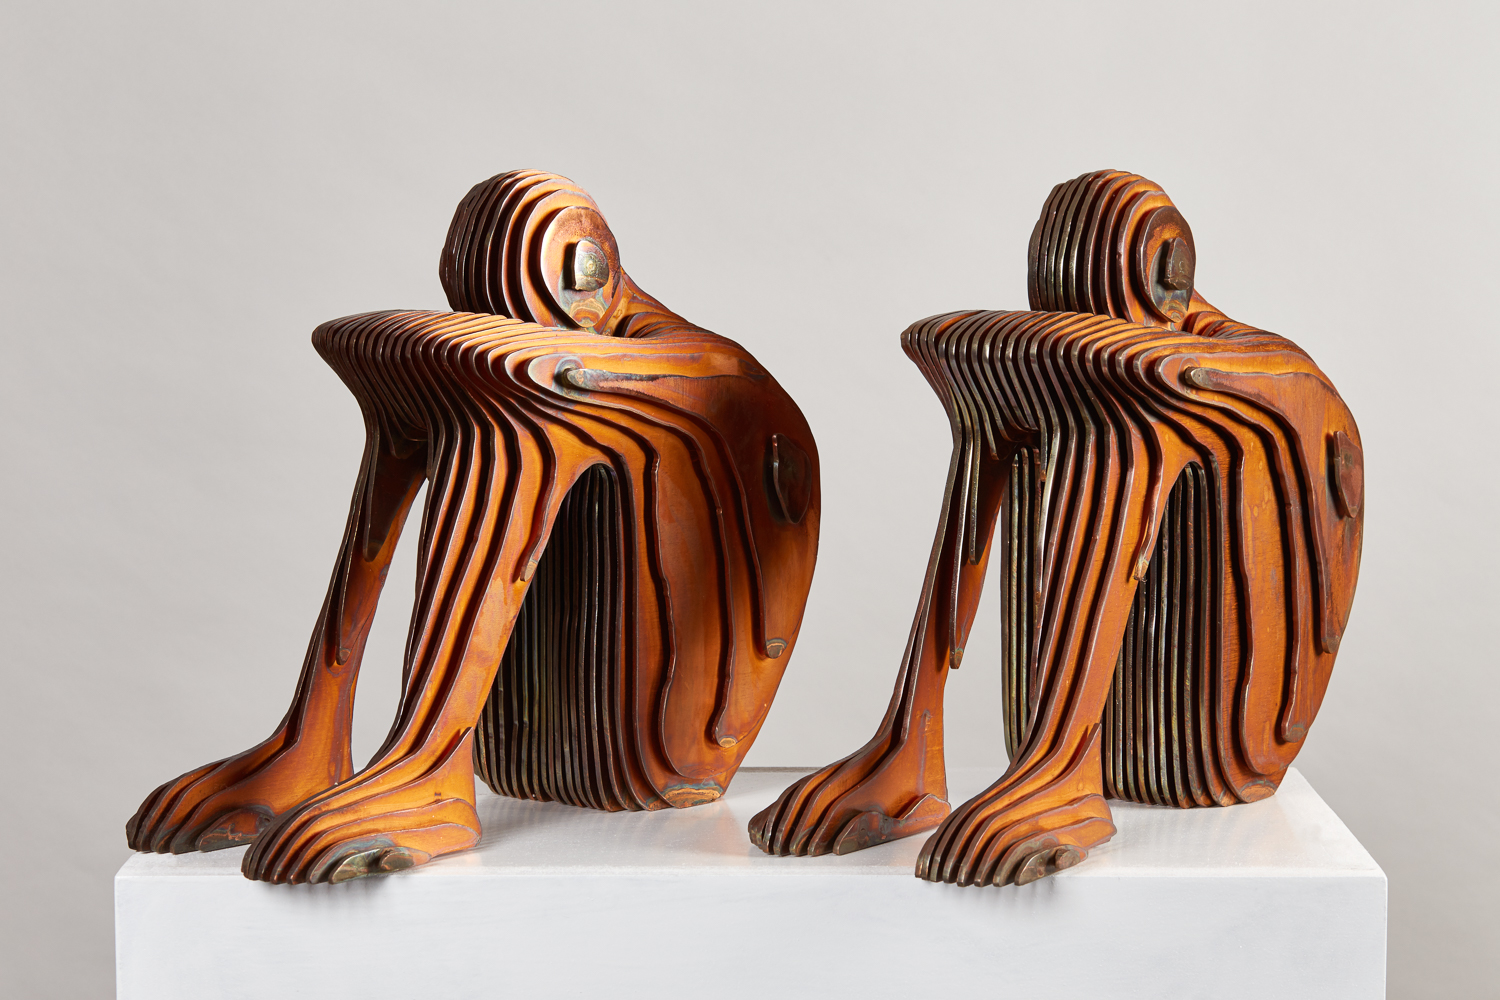 2016 One IV x 2 each 35cm x 30cm x 15cm Corten steel; copper plate .jpg